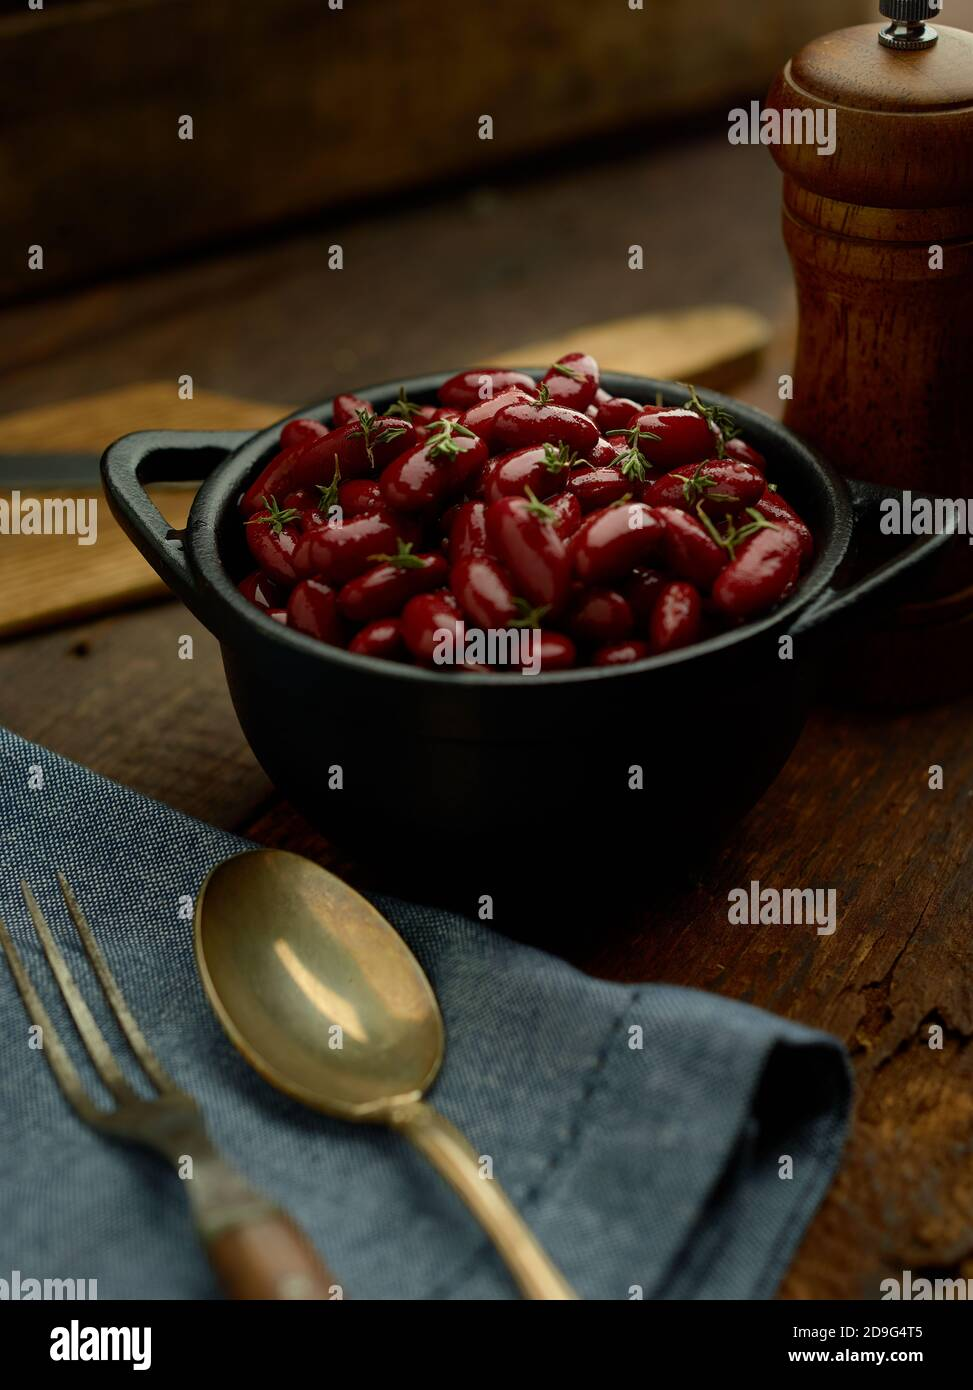 Red Kidney Beans In A Cast Iron Crock Stock Photo Alamy